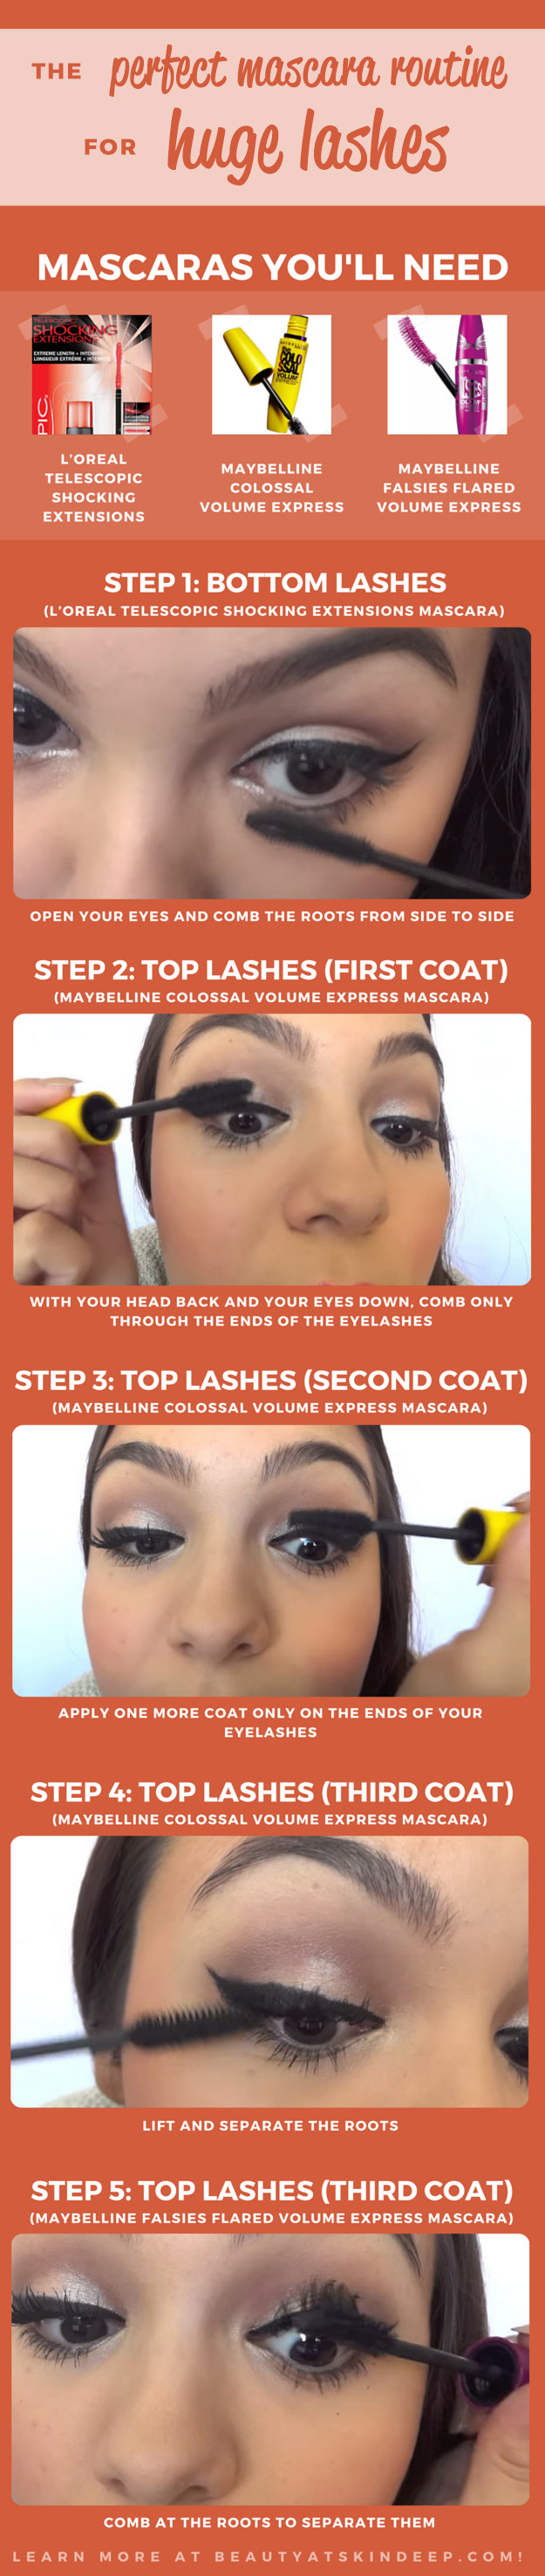 The Perfect Mascara For Huge Lashes - Step by step tutorial